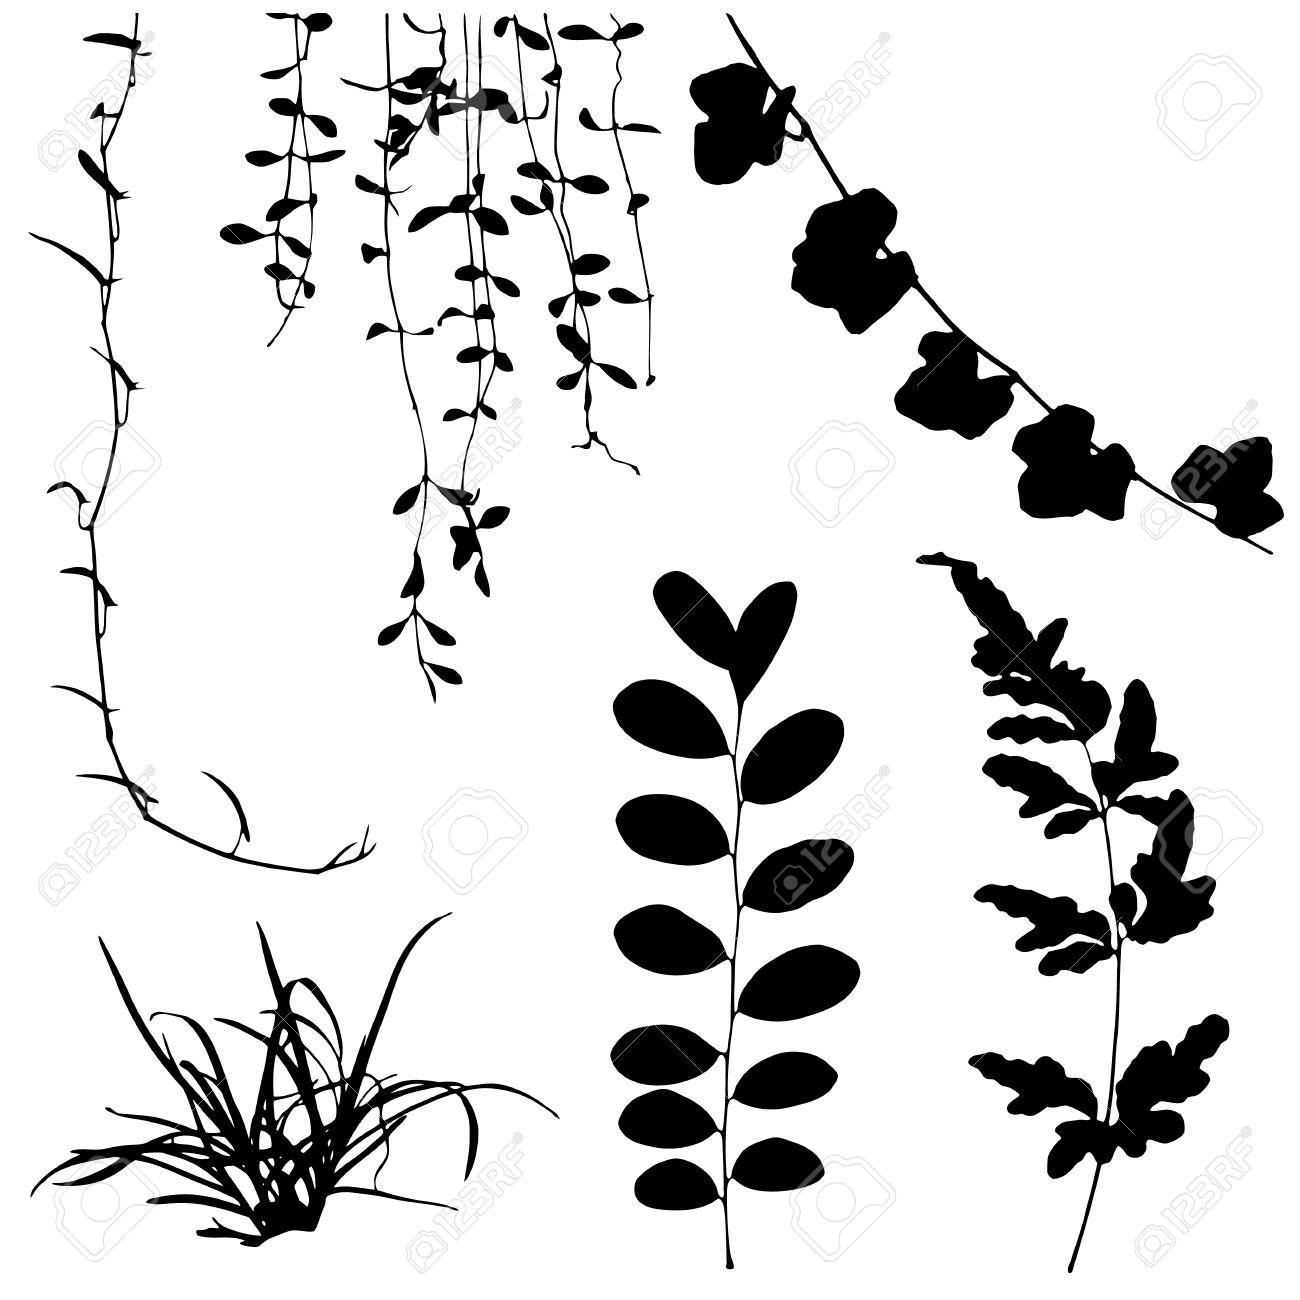 set black silhouettes of leaf and vine plant vector illustration royalty  free cliparts, vectors, and stock illustration. image 29651190.  123rf